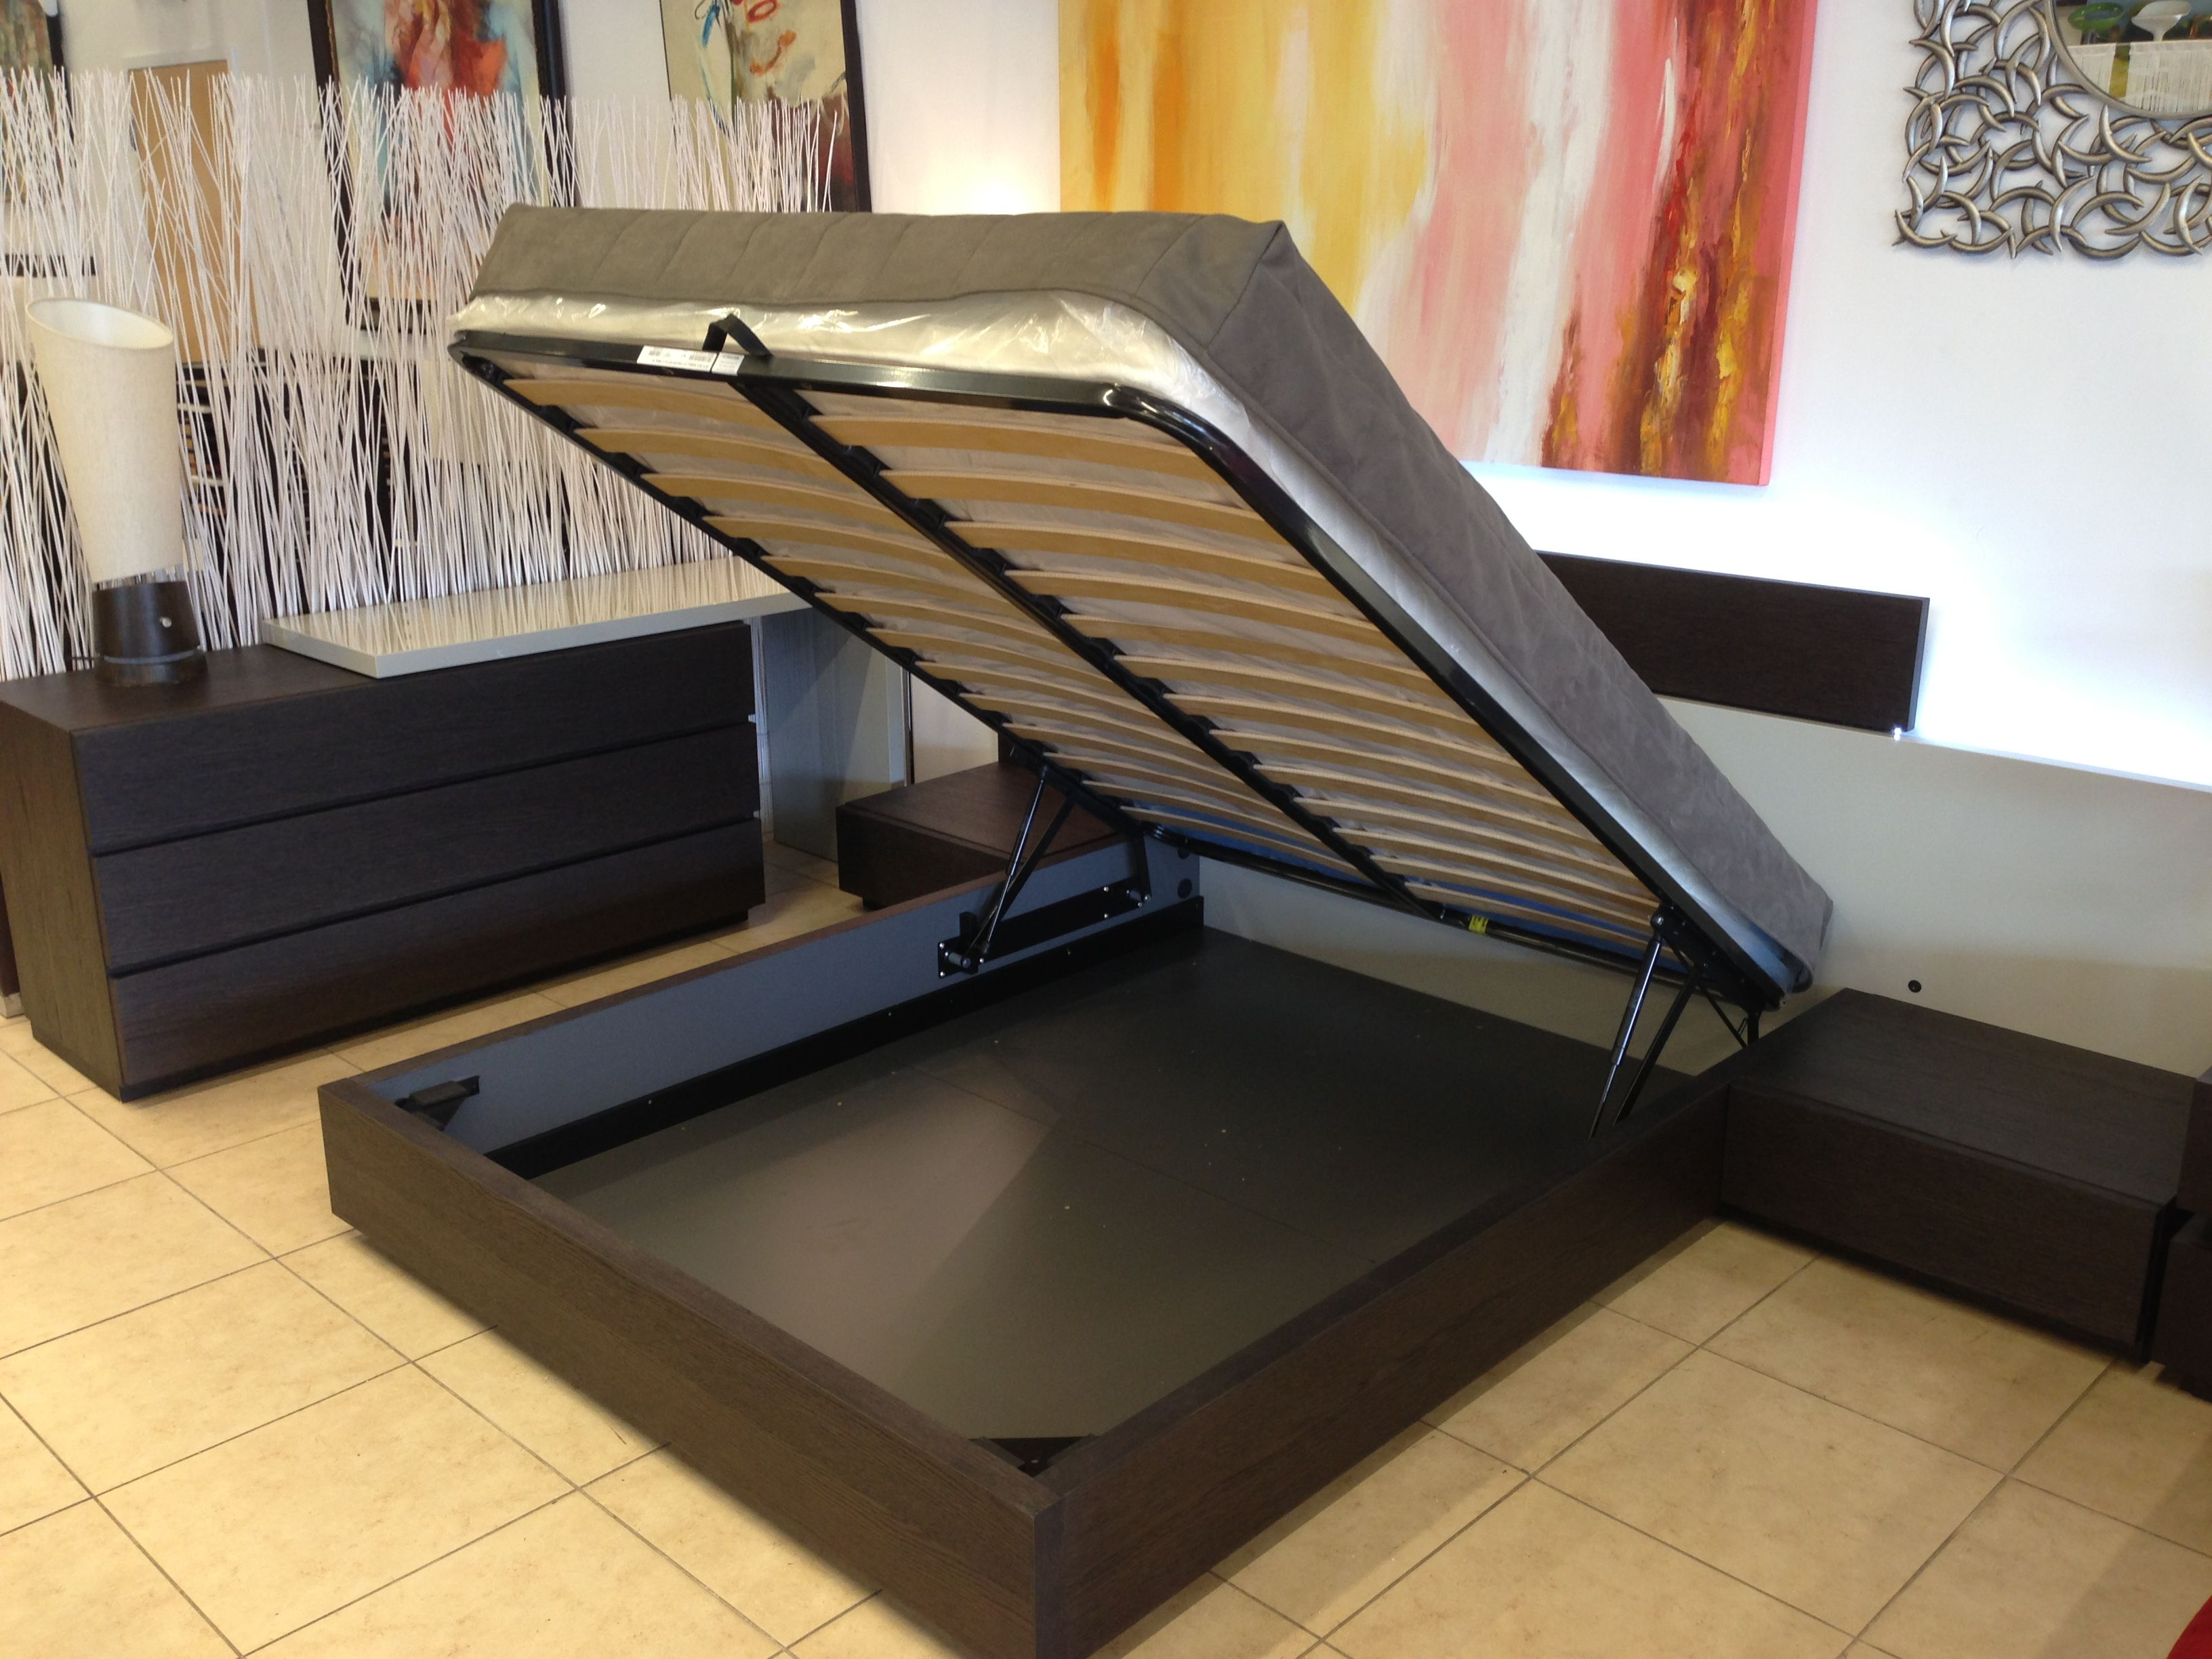 Hydraulic Lift Storage Bed Made In Italy Furniture Toronto